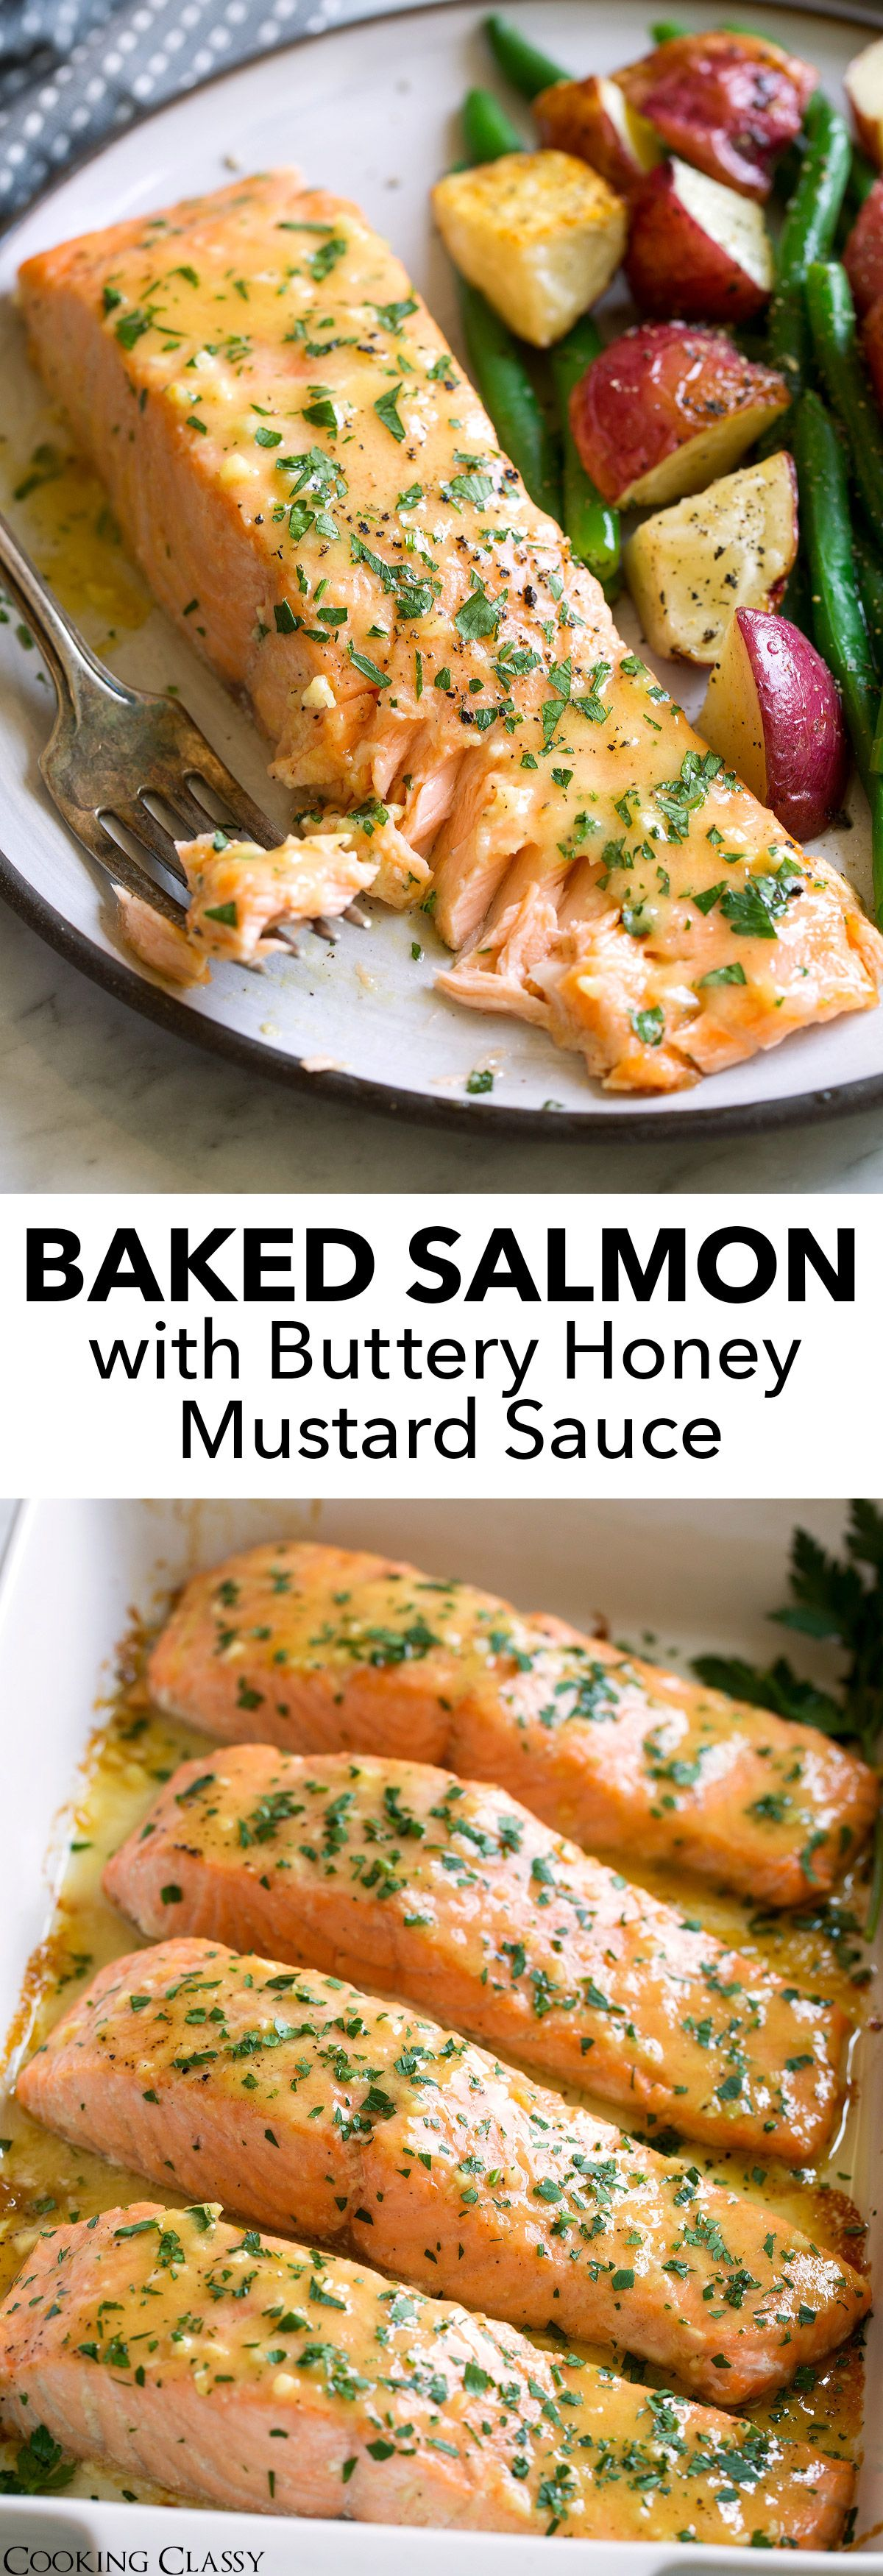 Baked Salmon with Buttery Honey Mustard Sauce  This is the easiest Baked Salmonwith a sweet and tangy Buttery Honey Mustard Sauce This recipe requires minimal effort ONLY...